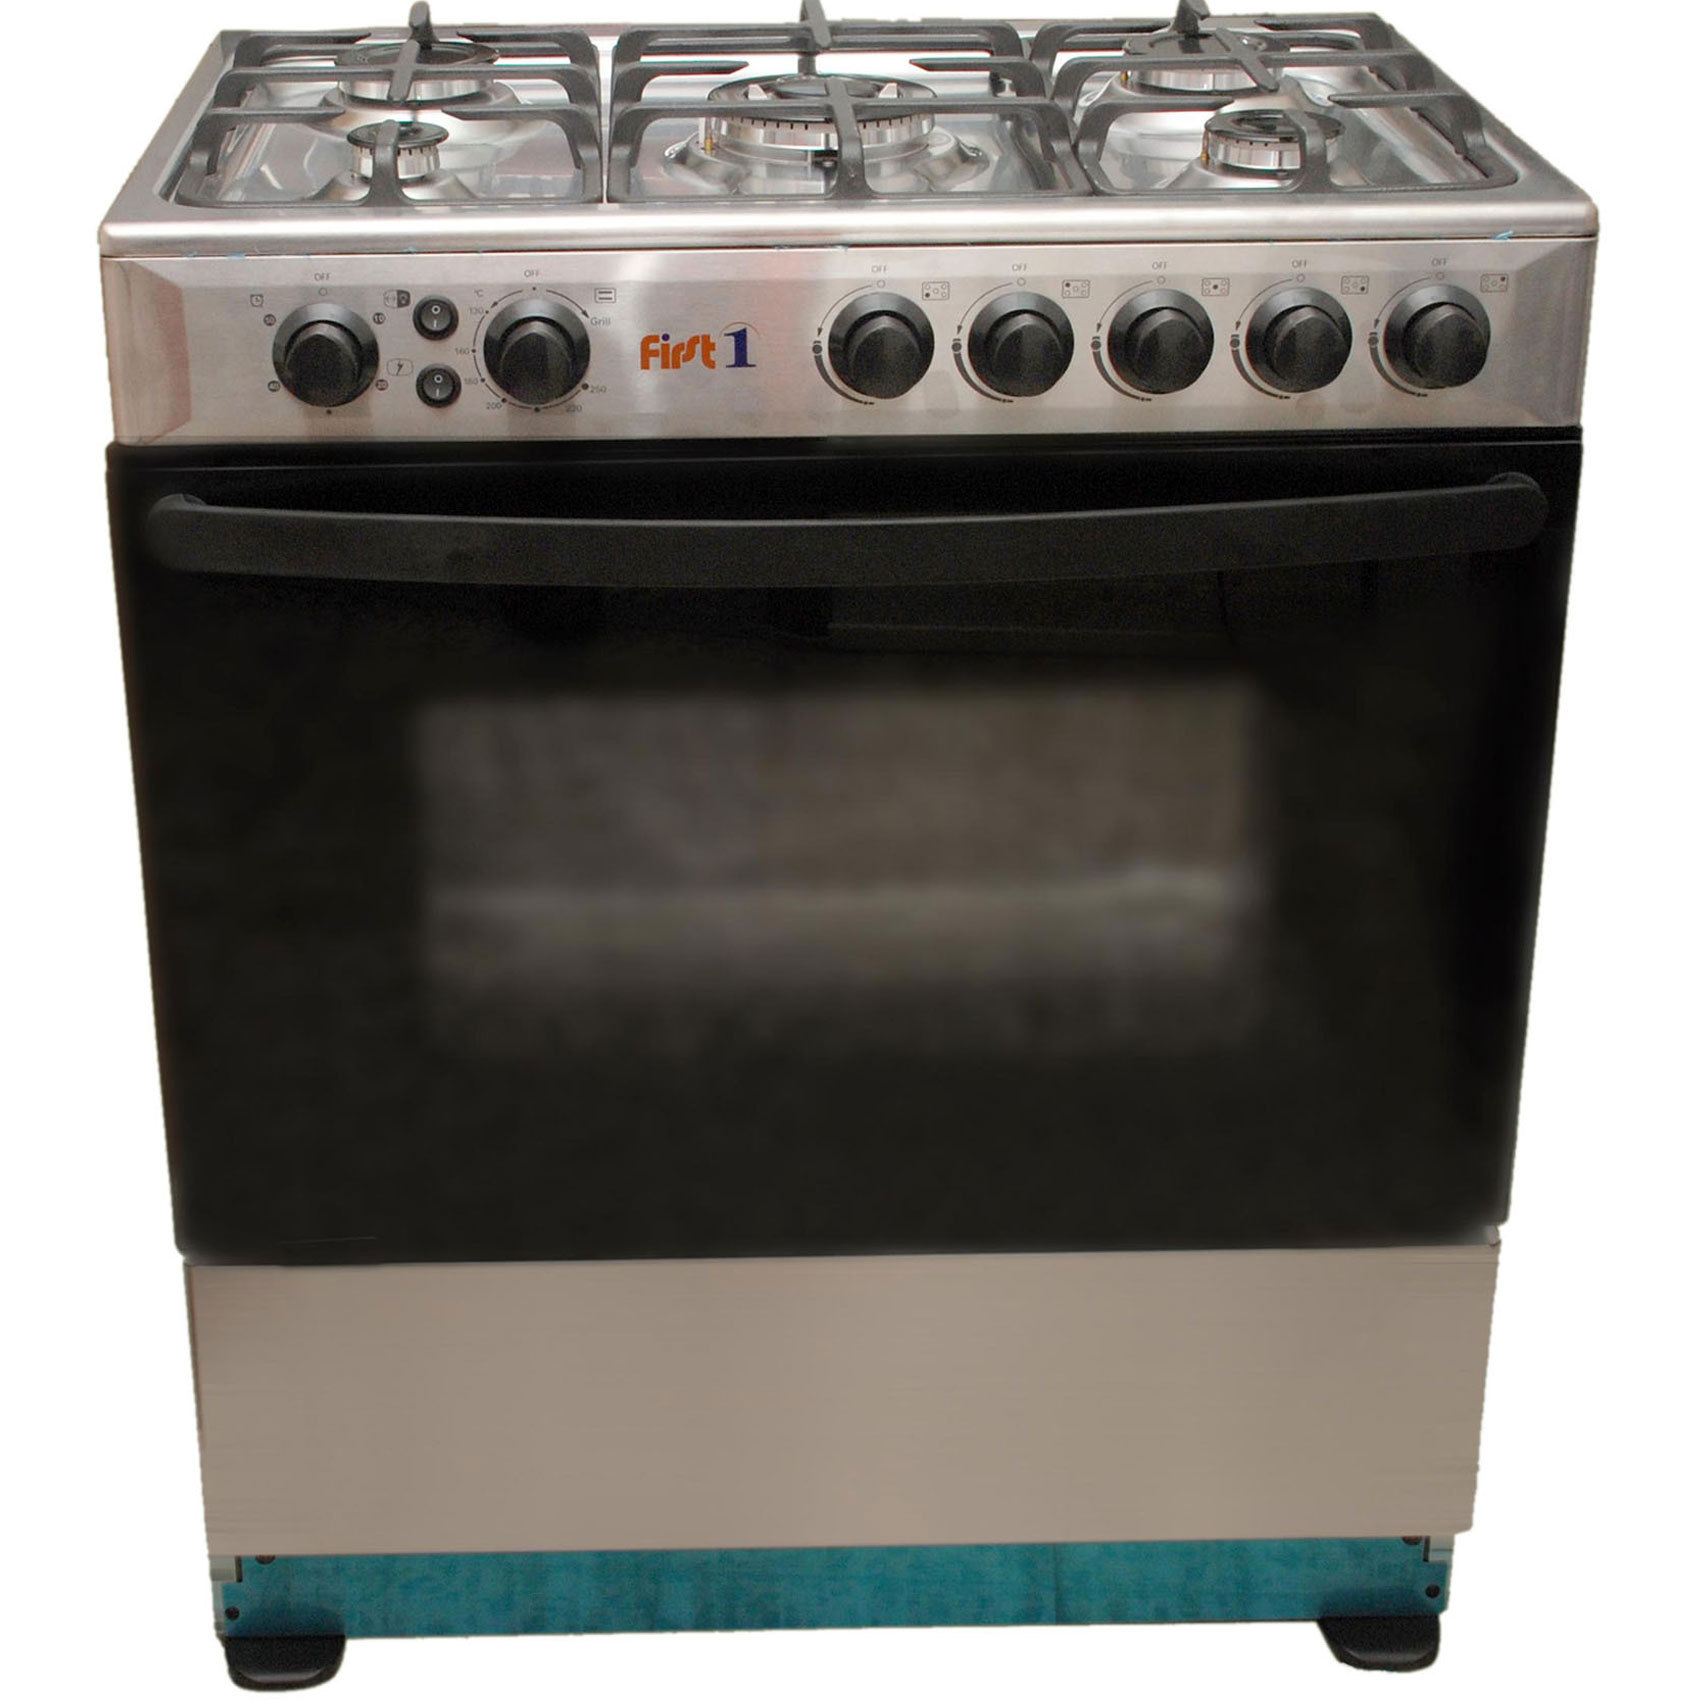 FIRST1 COOKER FCR-325GX 80X55 CM